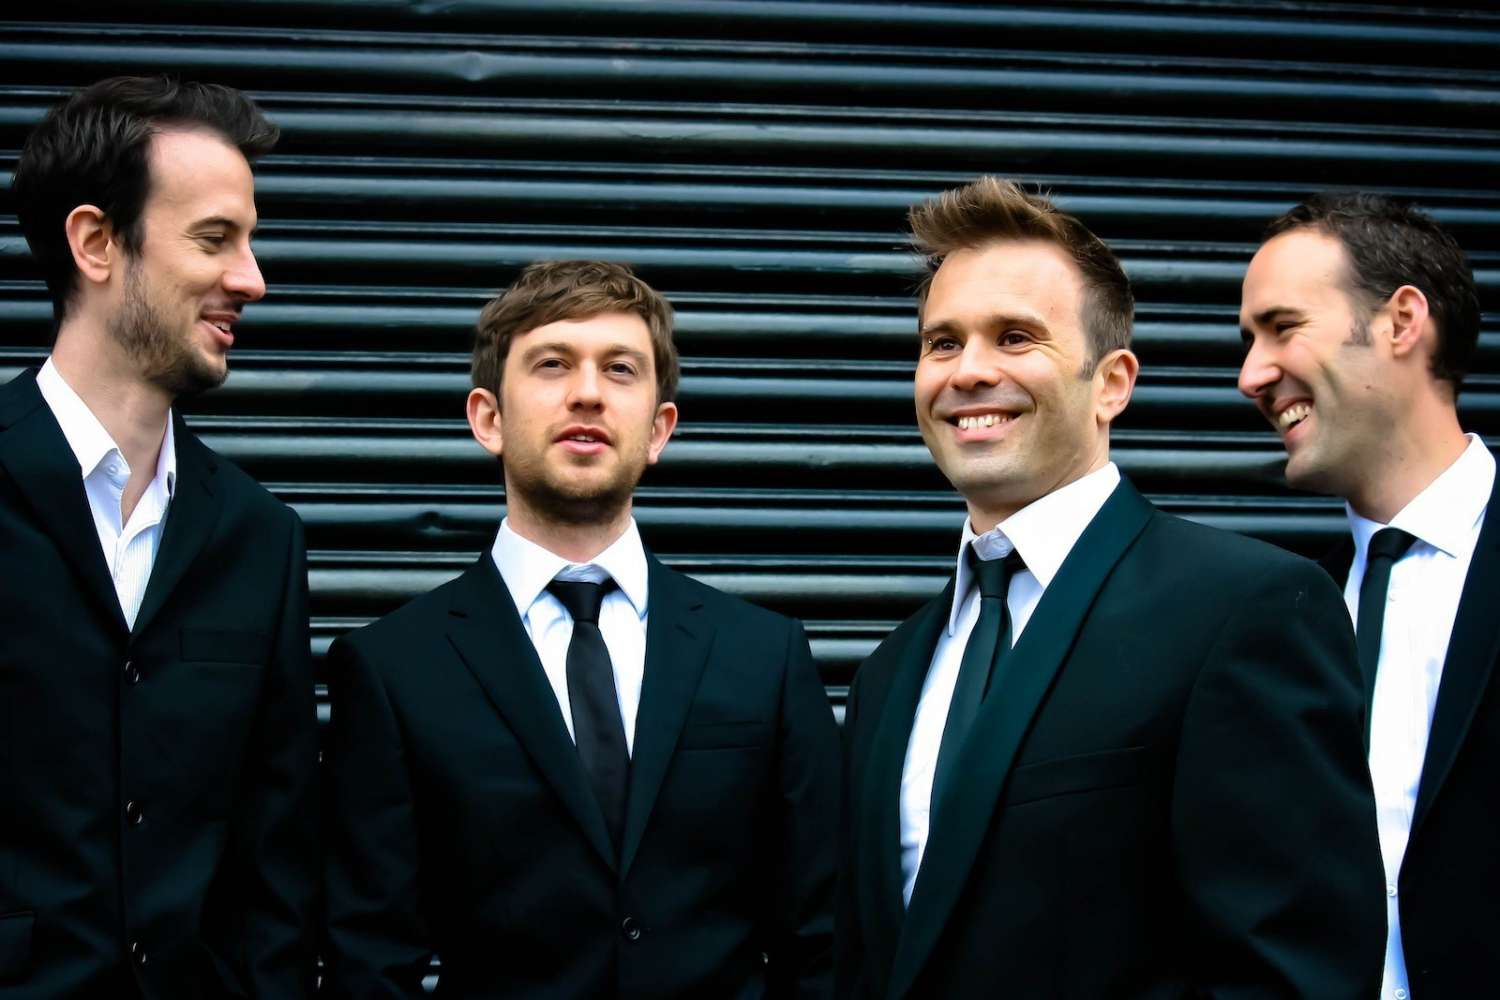 Get Carter | London Wedding & Party Band For Hire